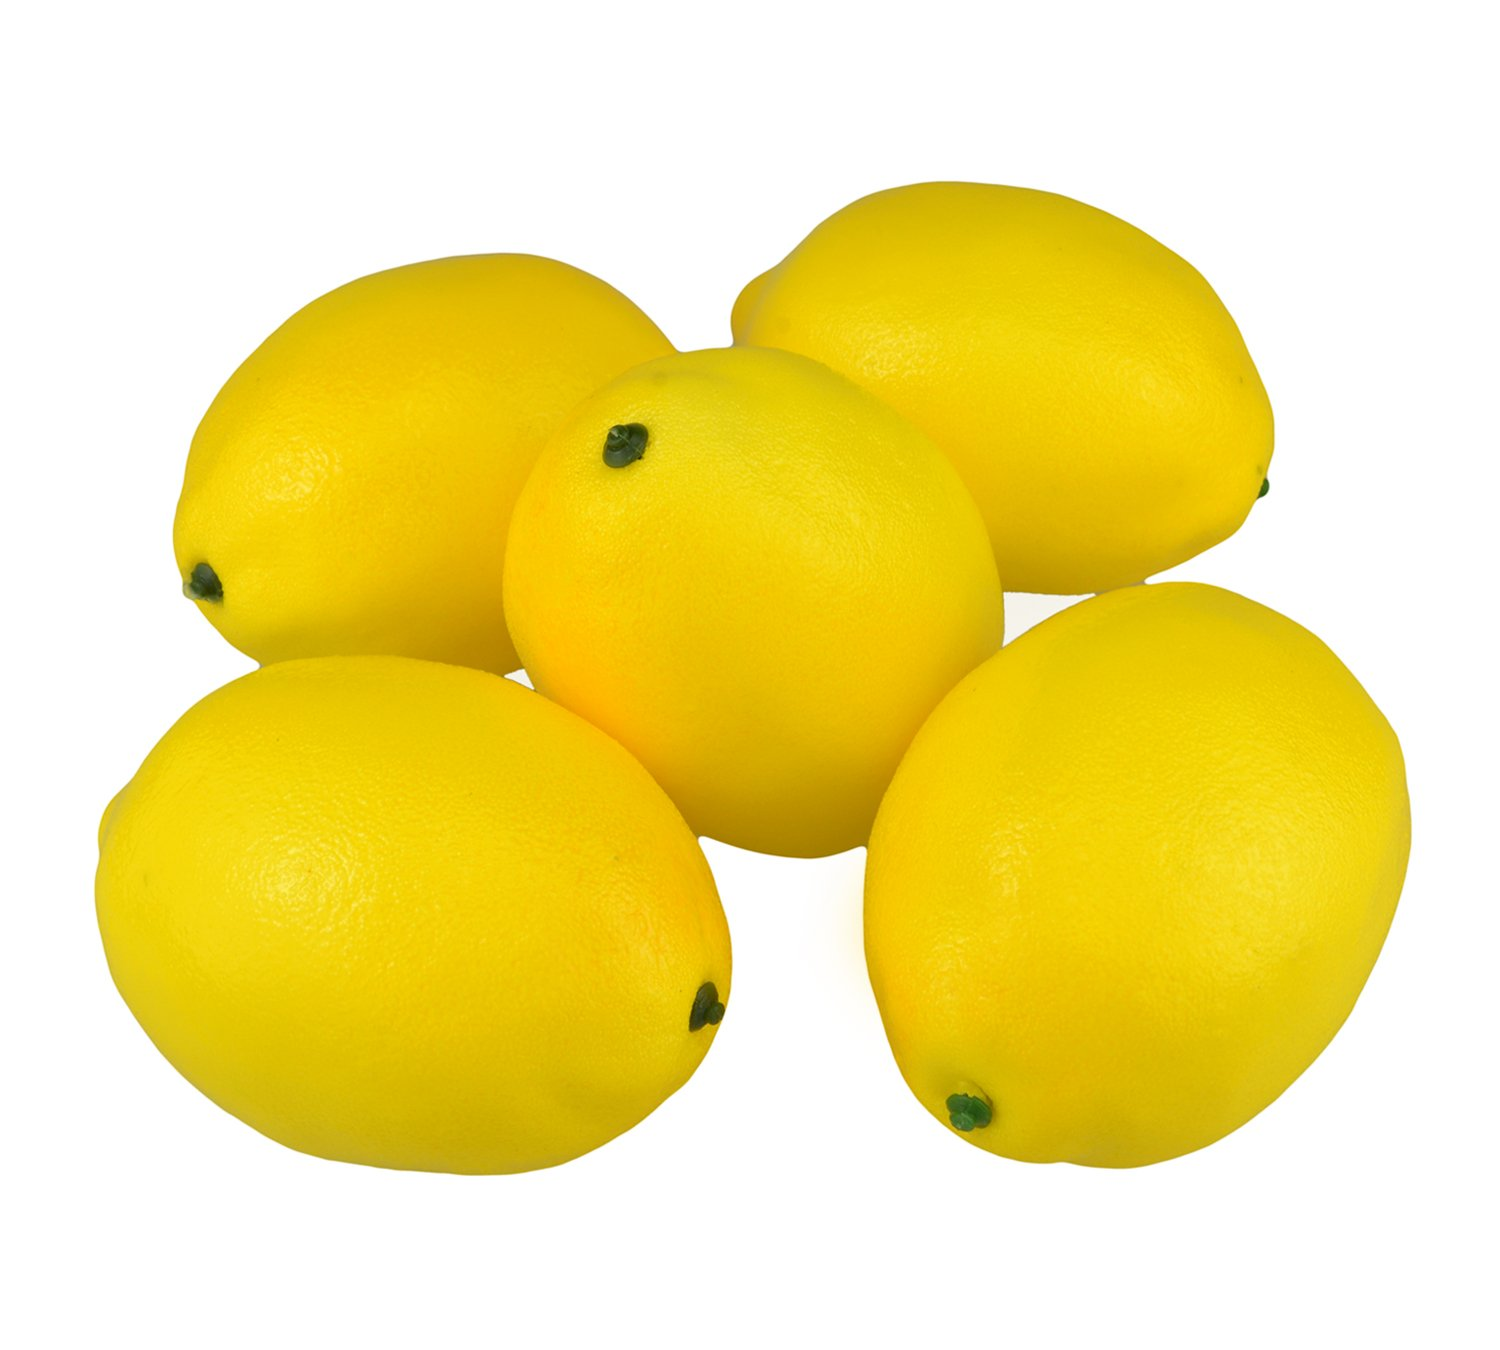 SAMYO-Fake-Fruit-Home-House-Kitchen-Party-Decoration-Artificial-Lifelike-Simulation-Yellow-Lemon-10pcs-Set